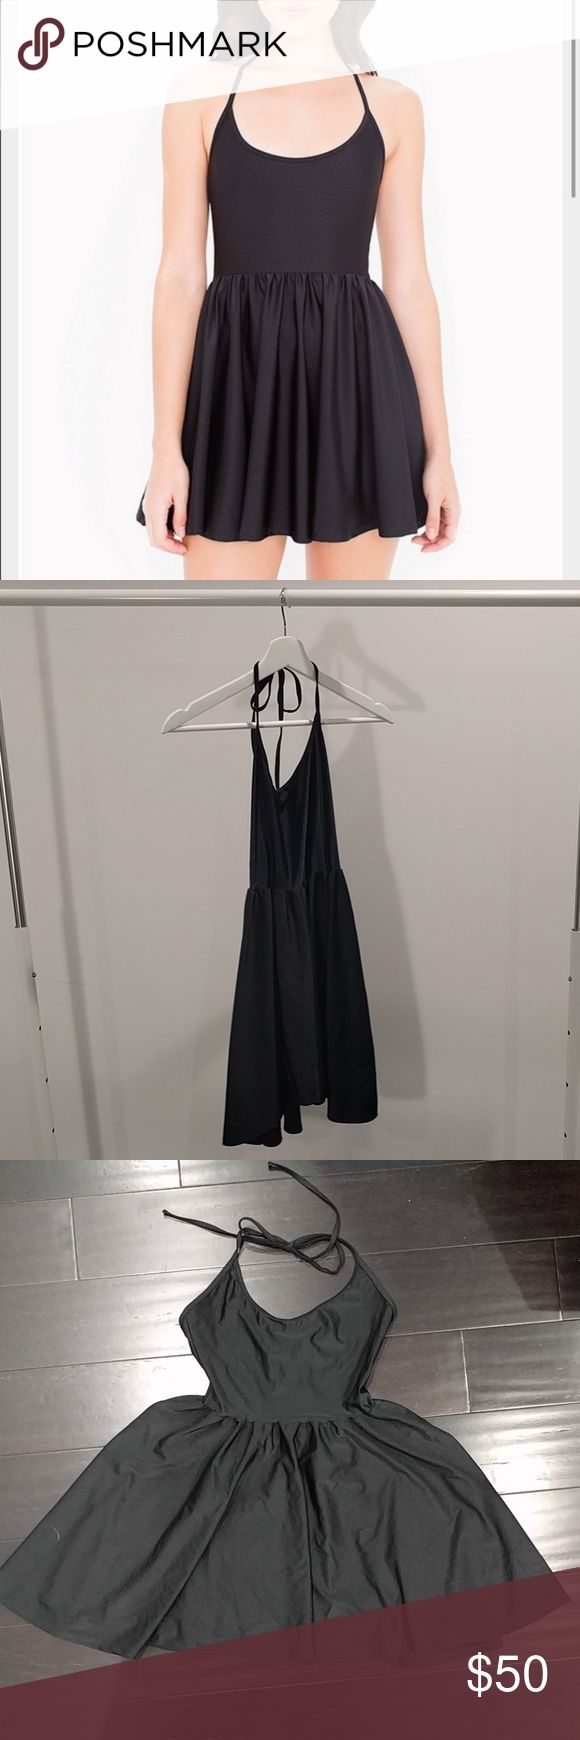 American Apparel // figure skater dress // US M American Apparel Figure skarter dress size US Medium black 21 inches in length Tie back around neck Never worn but no tags American Apparel Dresses Mini